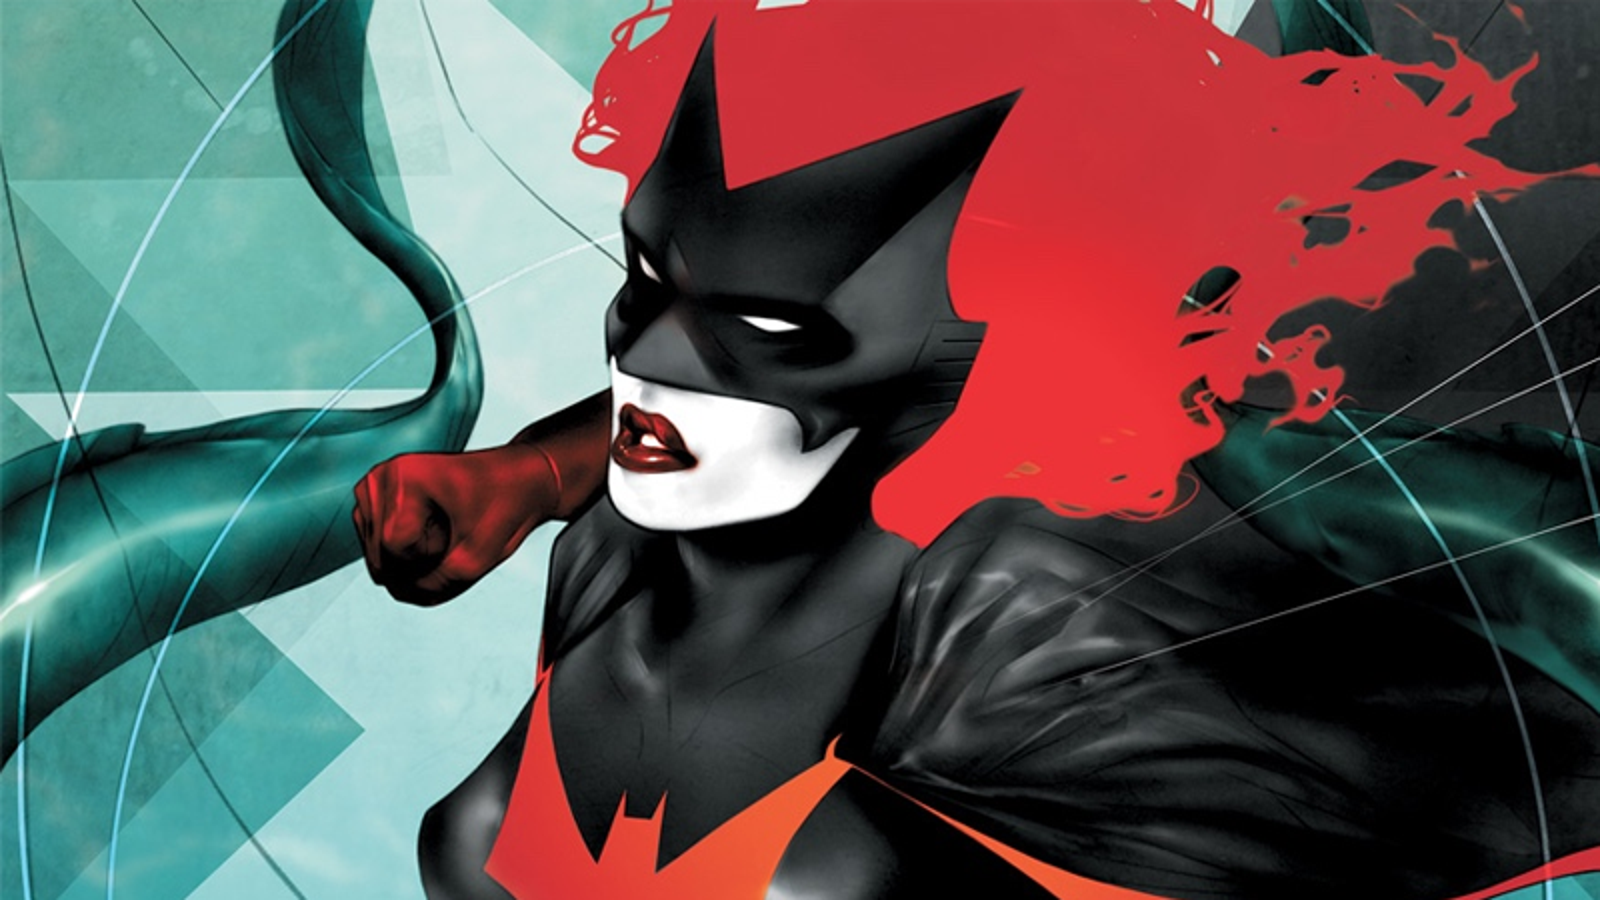 A Batwoman TV Show Is in Development at the CW, Starring Lesbian Superhero Kate Kane